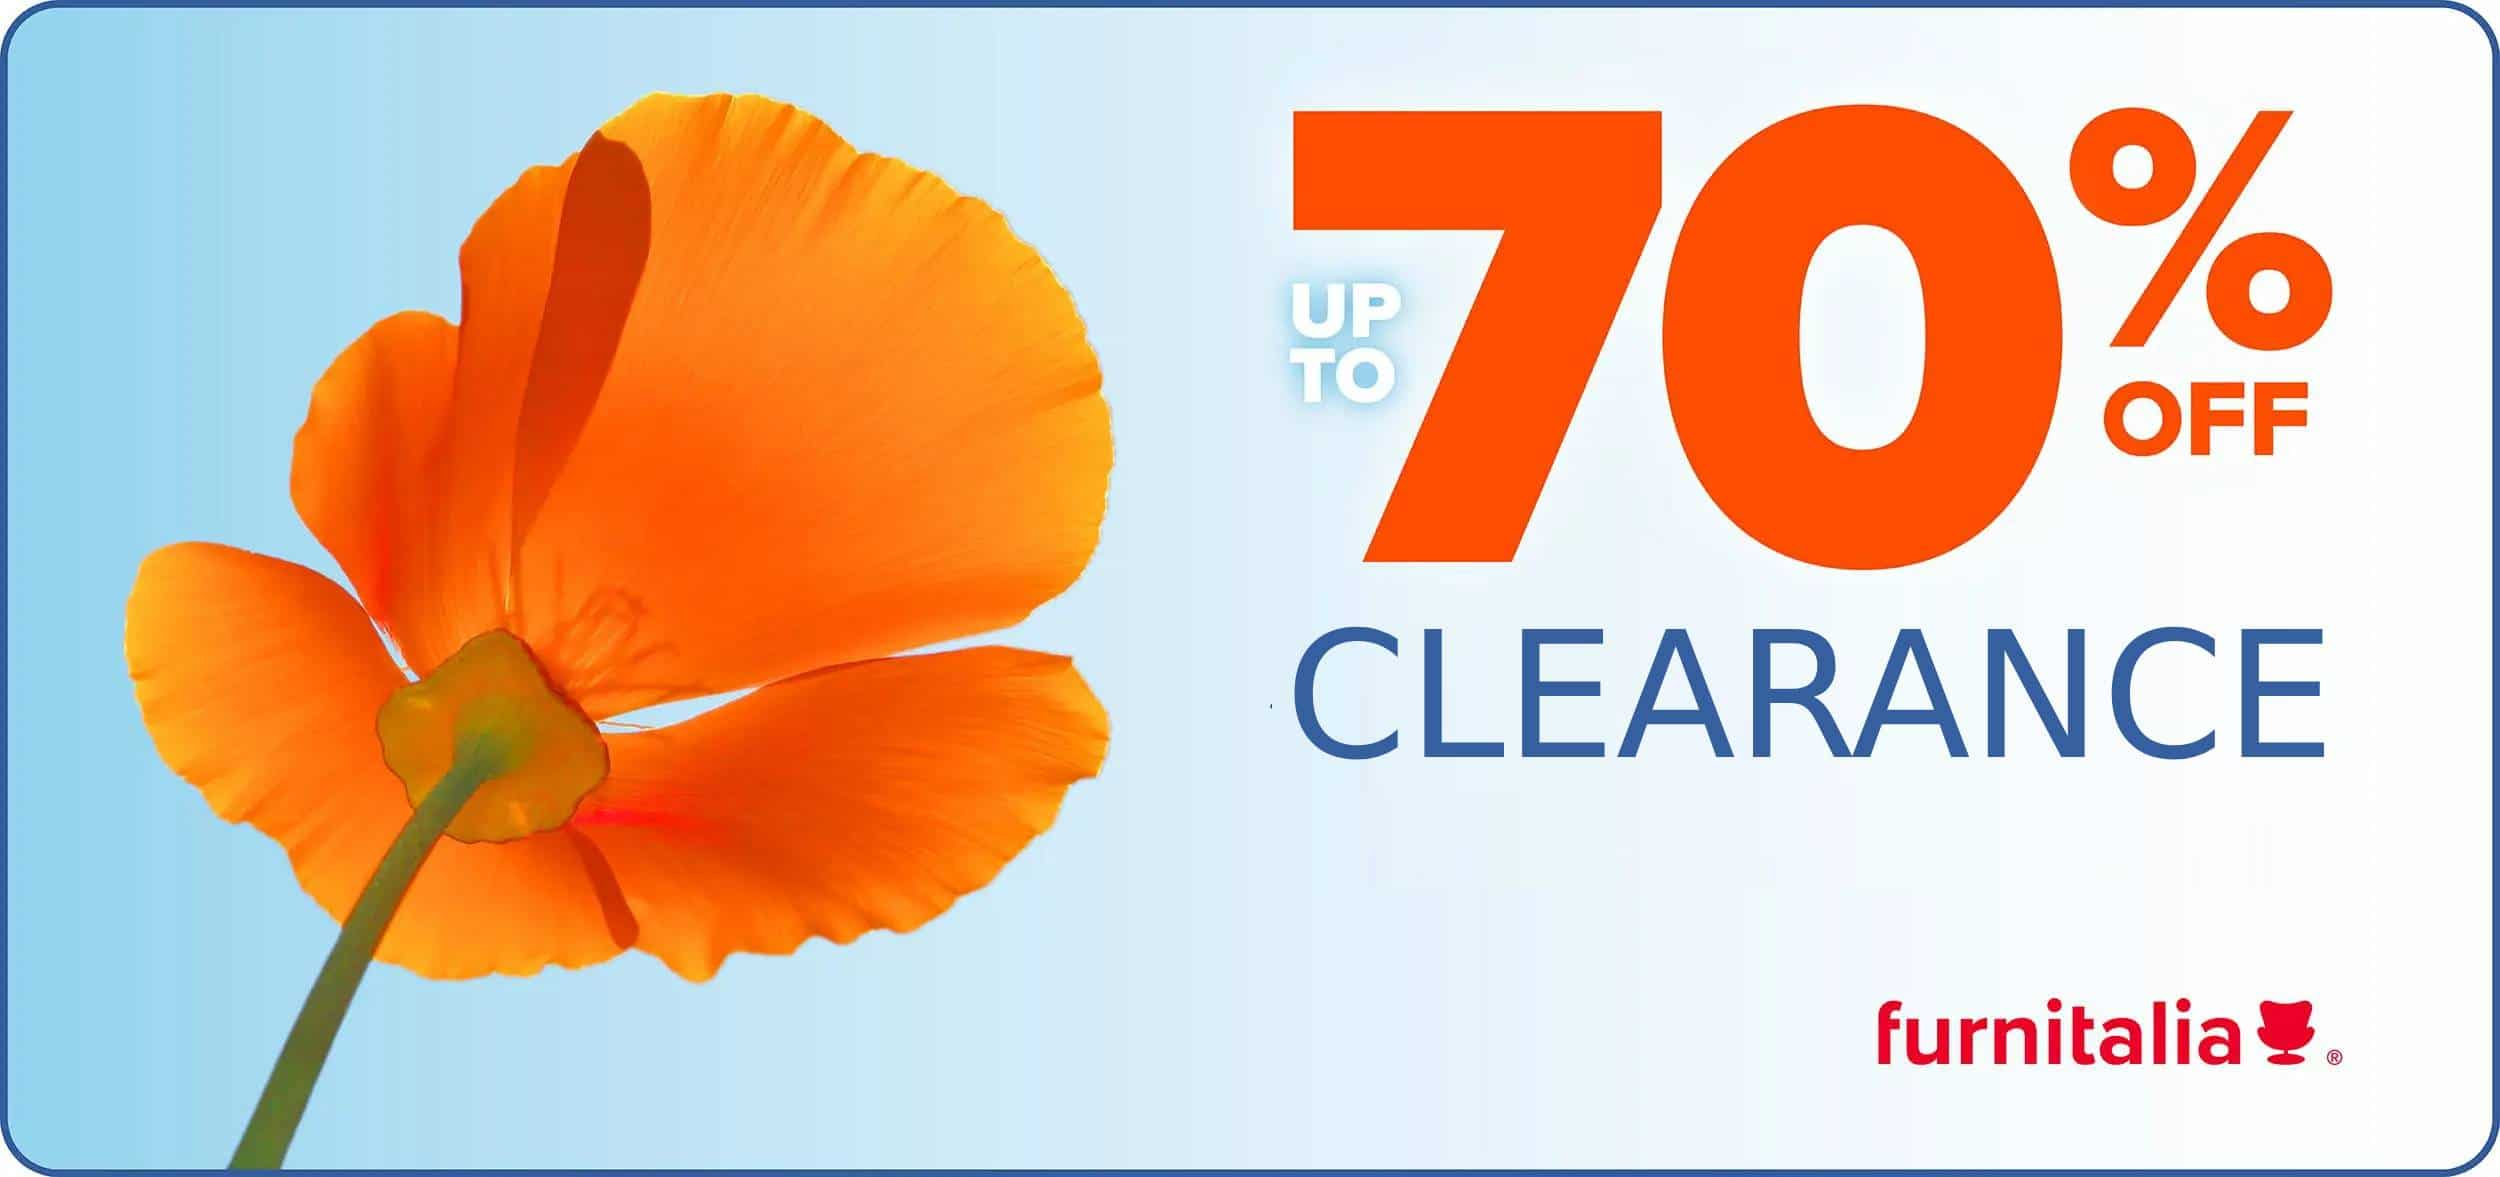 Summer Clearance Sale at Furnitalia - Get up to 70% OFF on clearance items